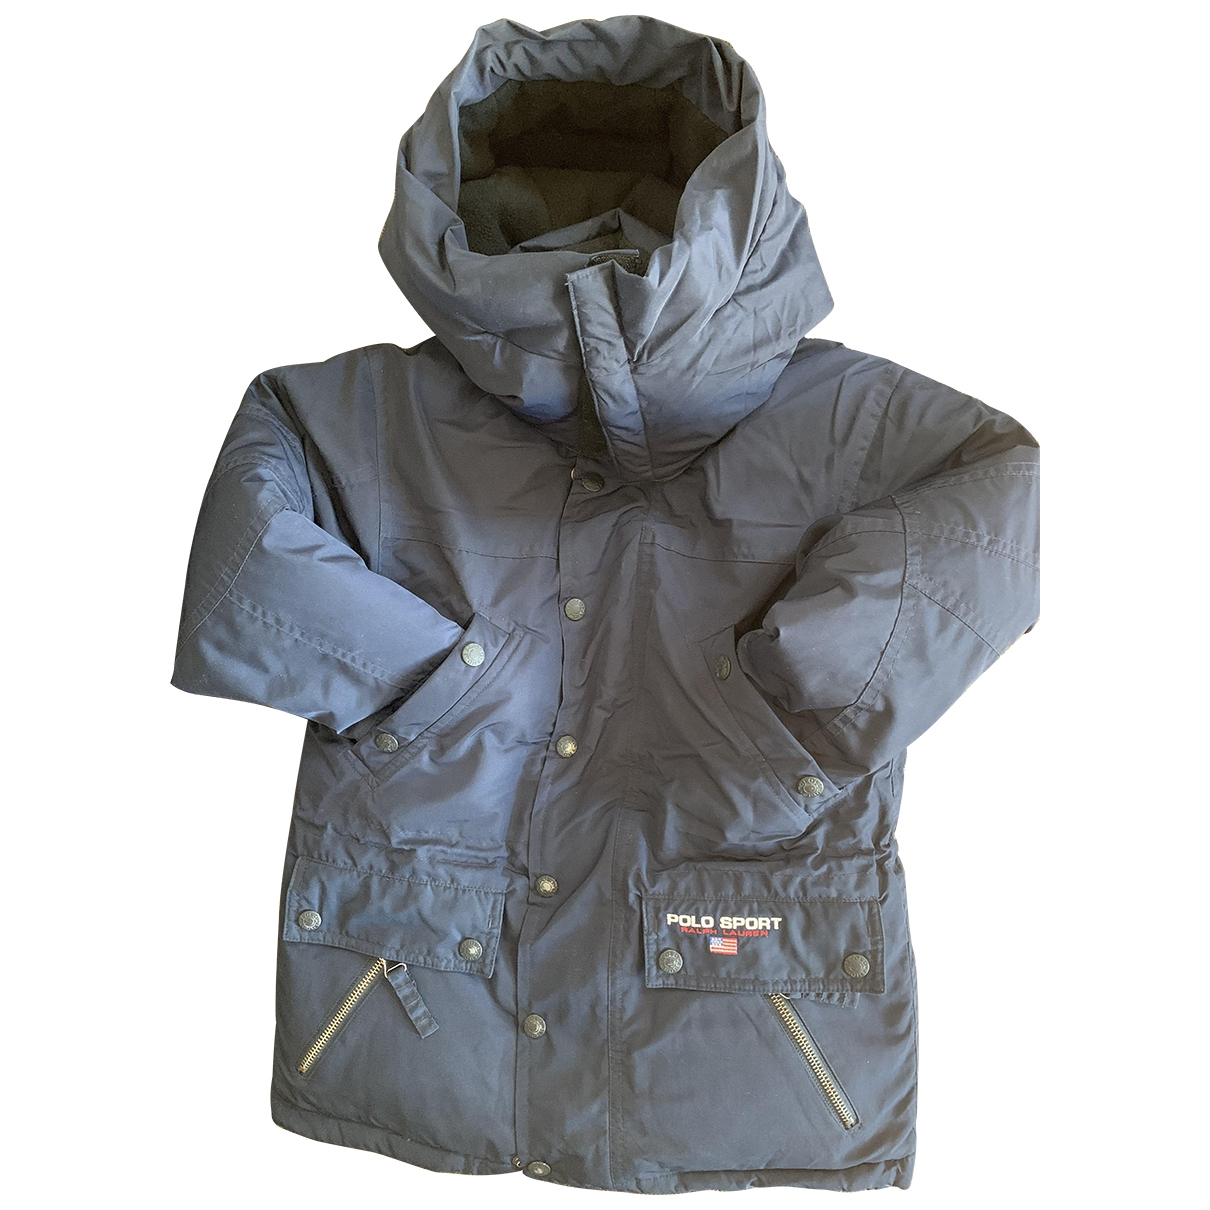 Polo Ralph Lauren \N Blue Cotton jacket & coat for Kids 5 years - until 42.5 inches UK